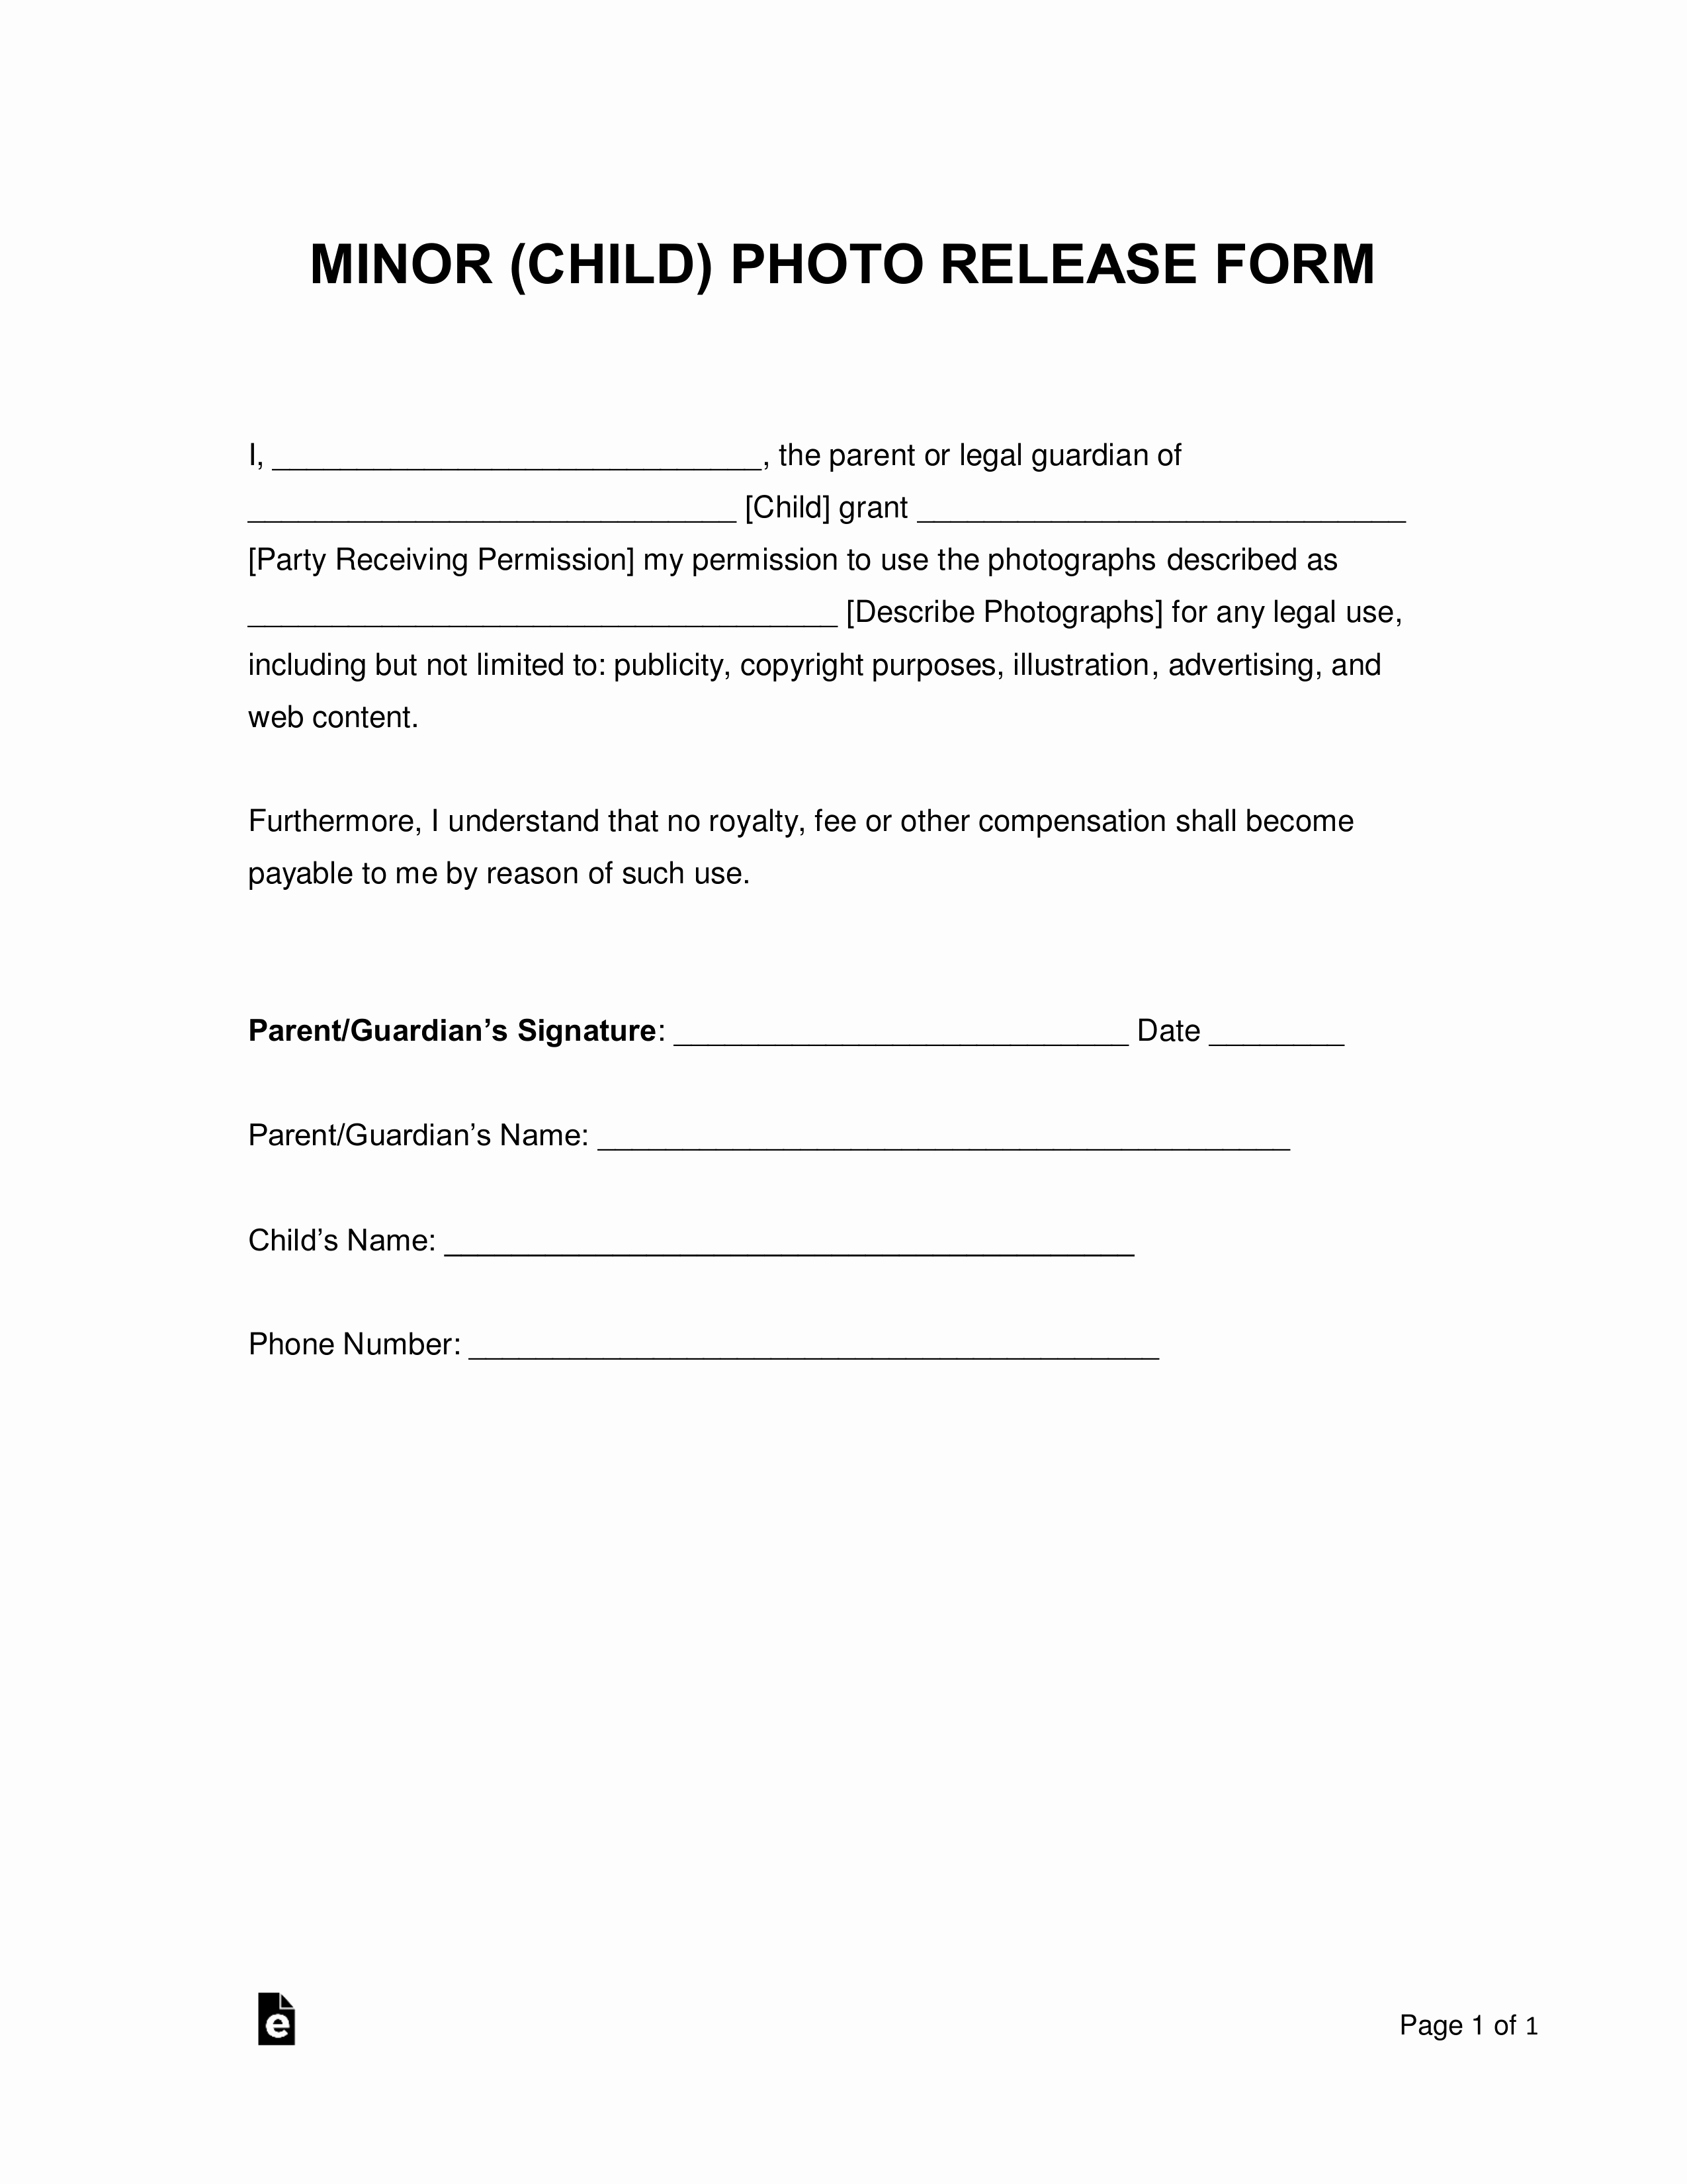 Photo Release form Template Free Awesome Free Minor Child Release form Word